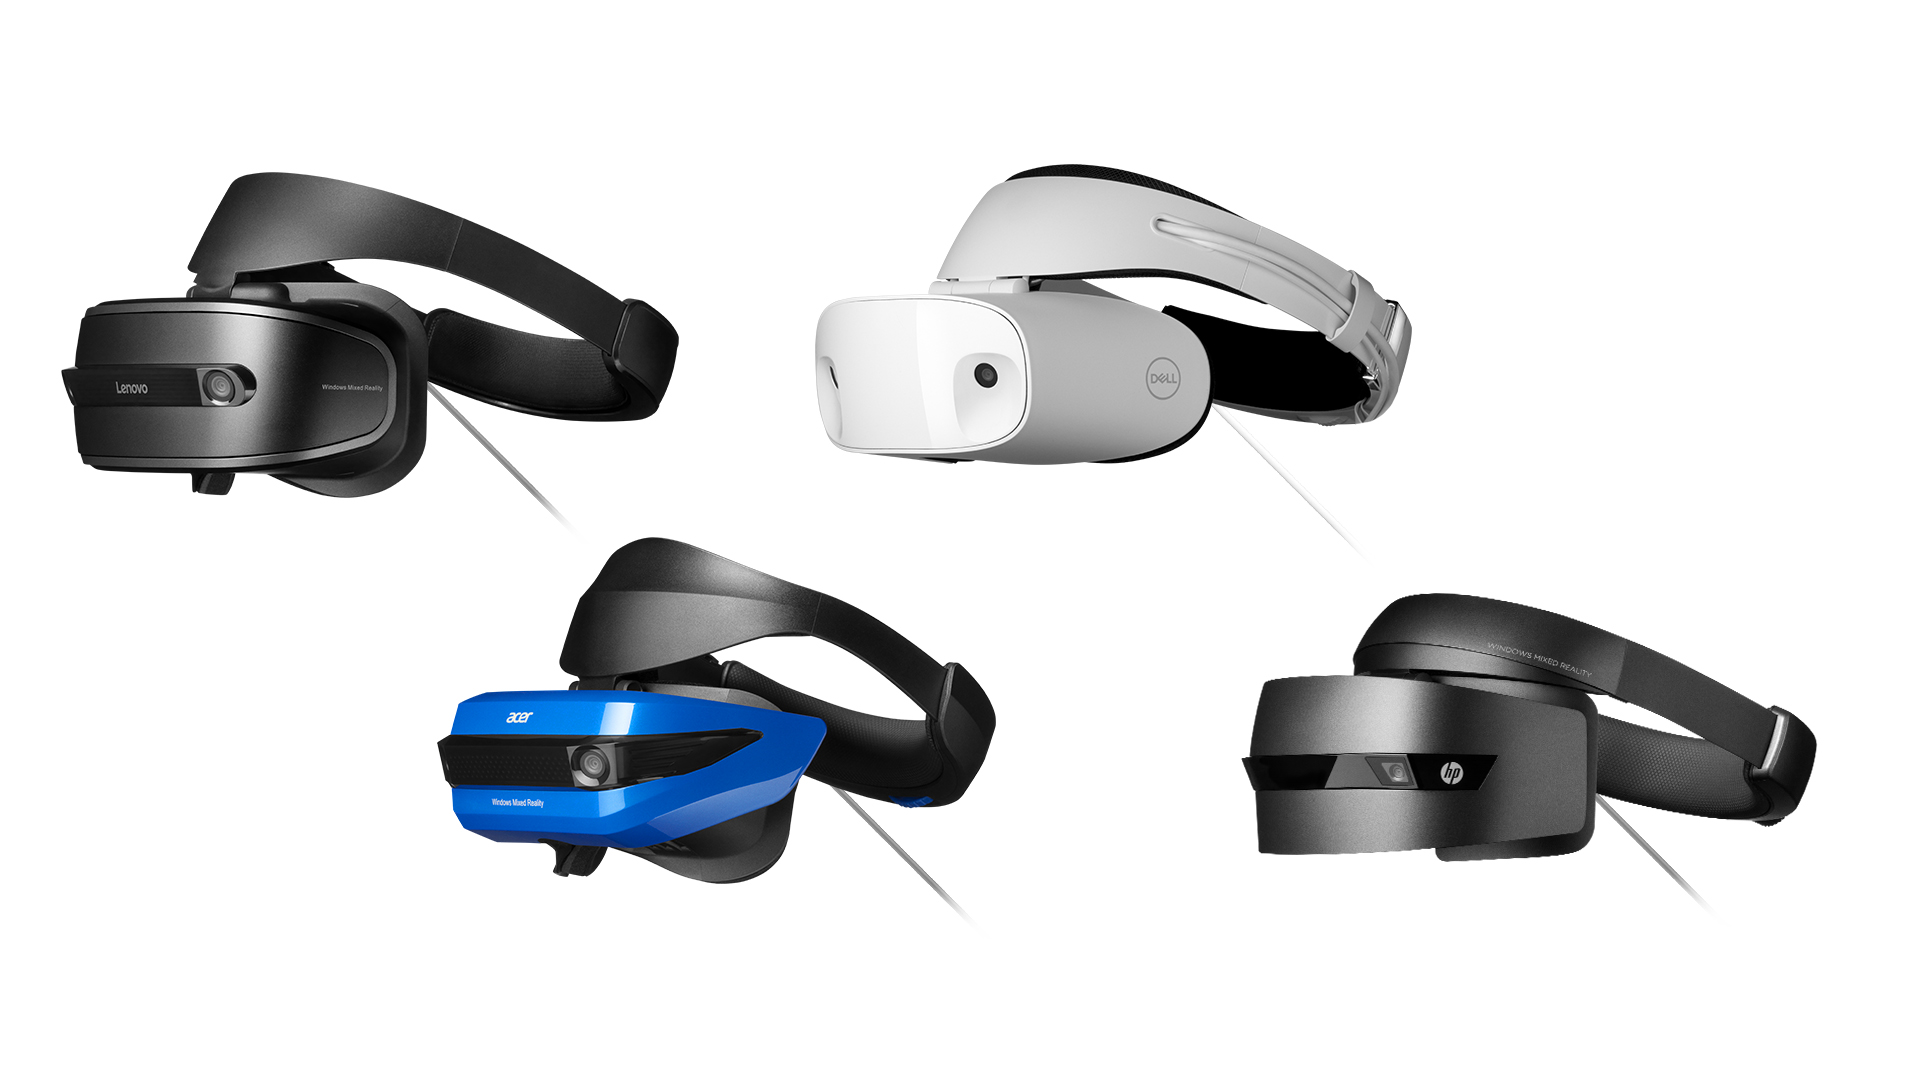 Image result for Steam support and Halo VR are coming to Windows 10 mixed reality headsets